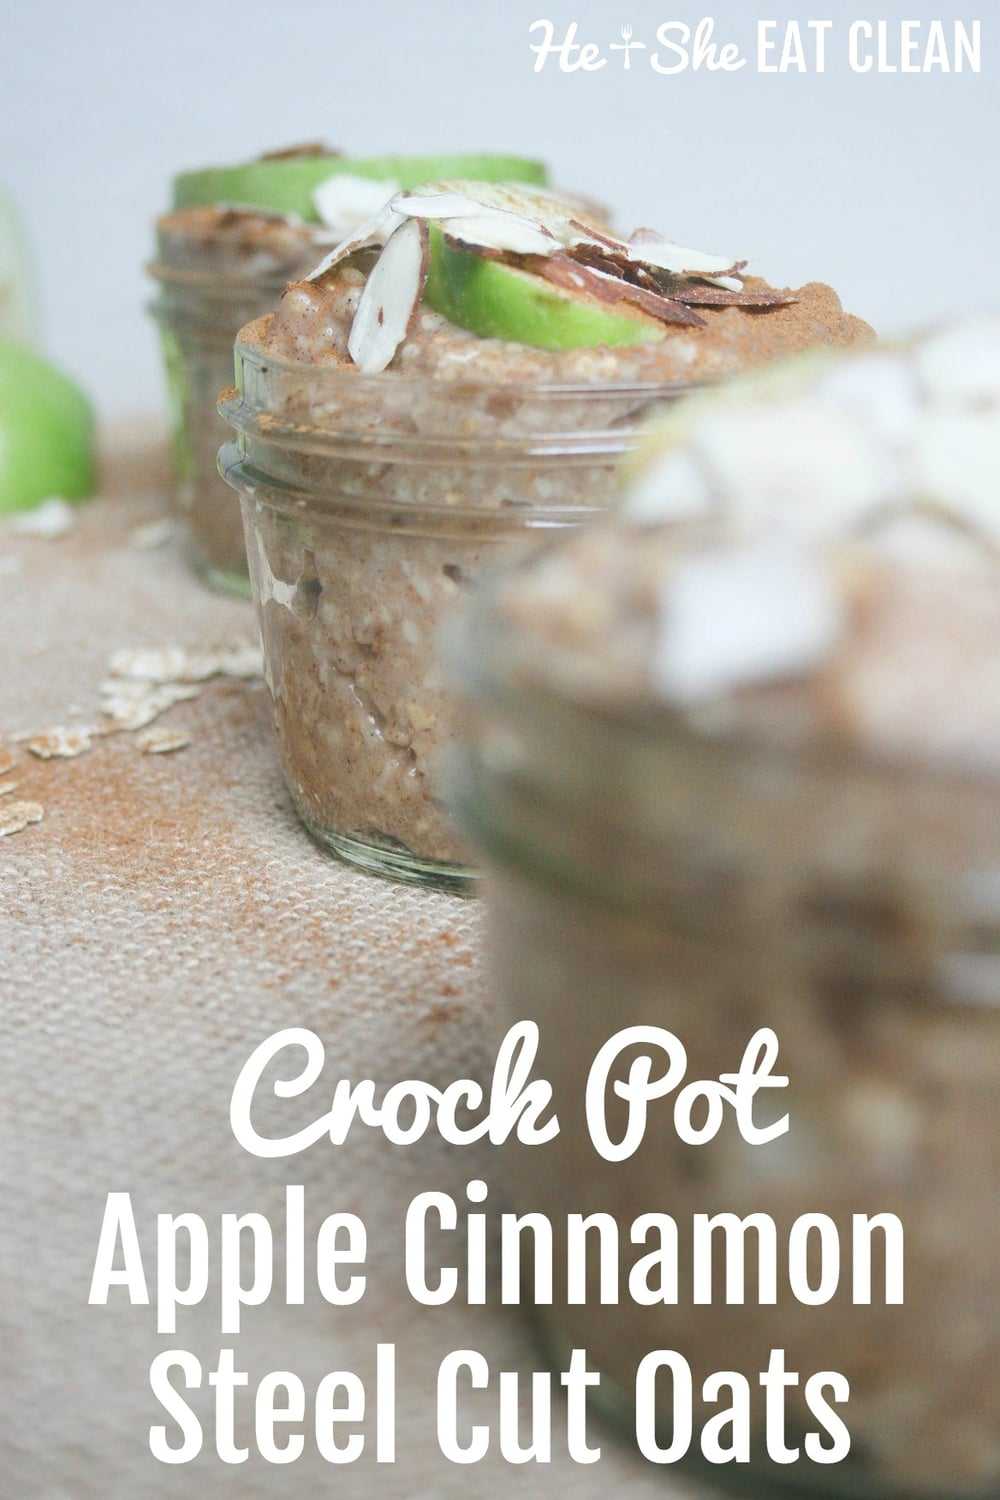 Clean Eat Recipe: Apple-Cinnamon Steel Cut Oats | He and She Eat Clean